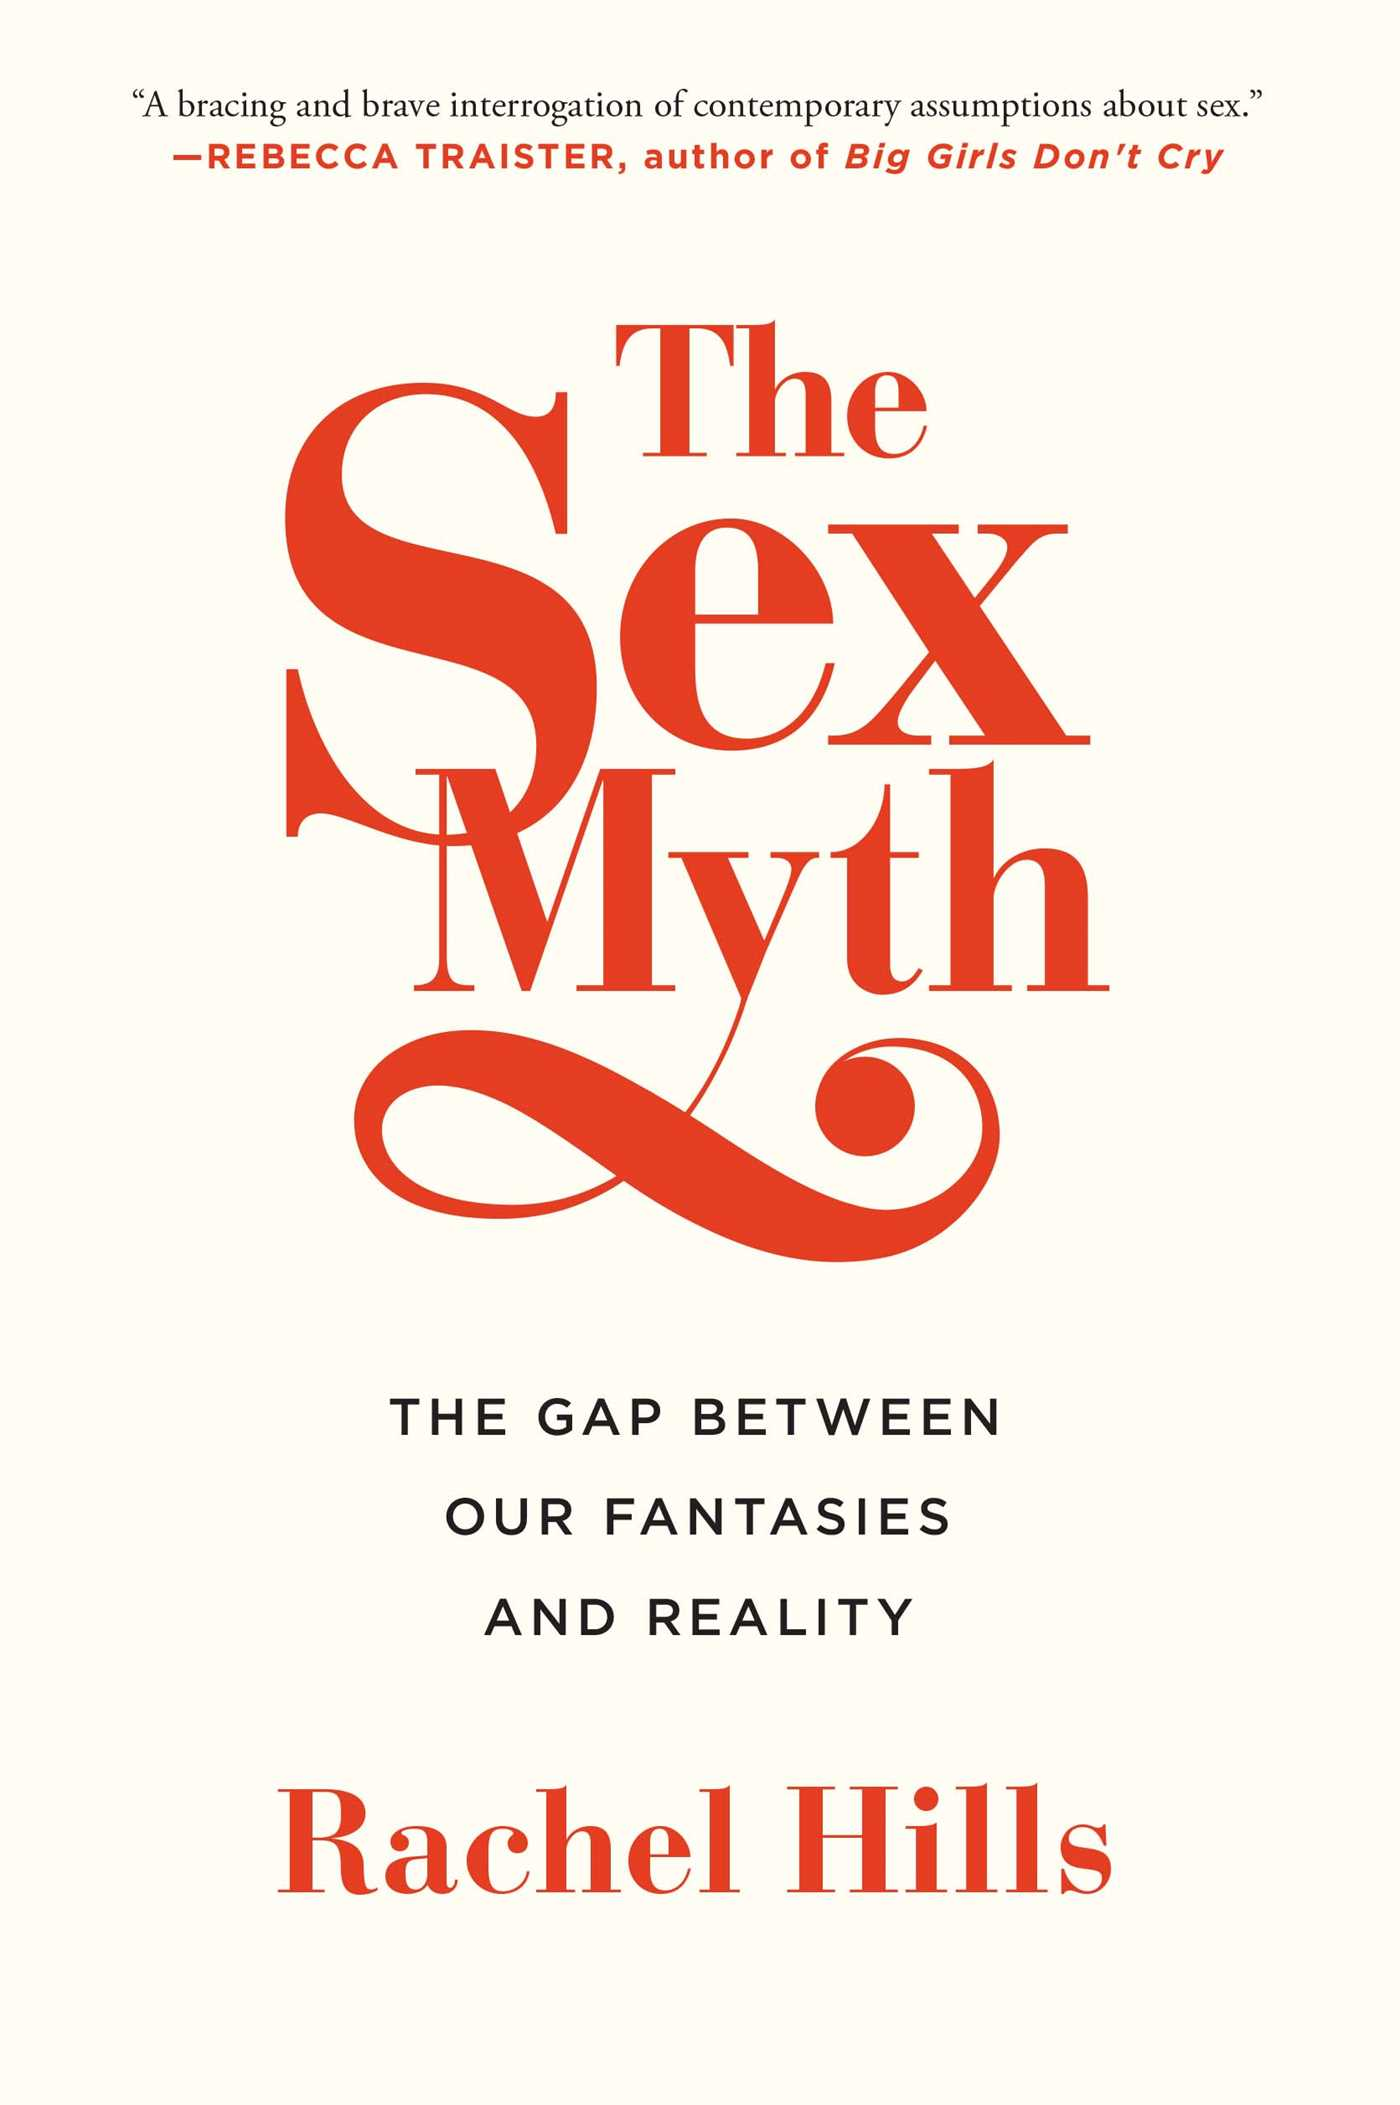 Myths and reality of sex education